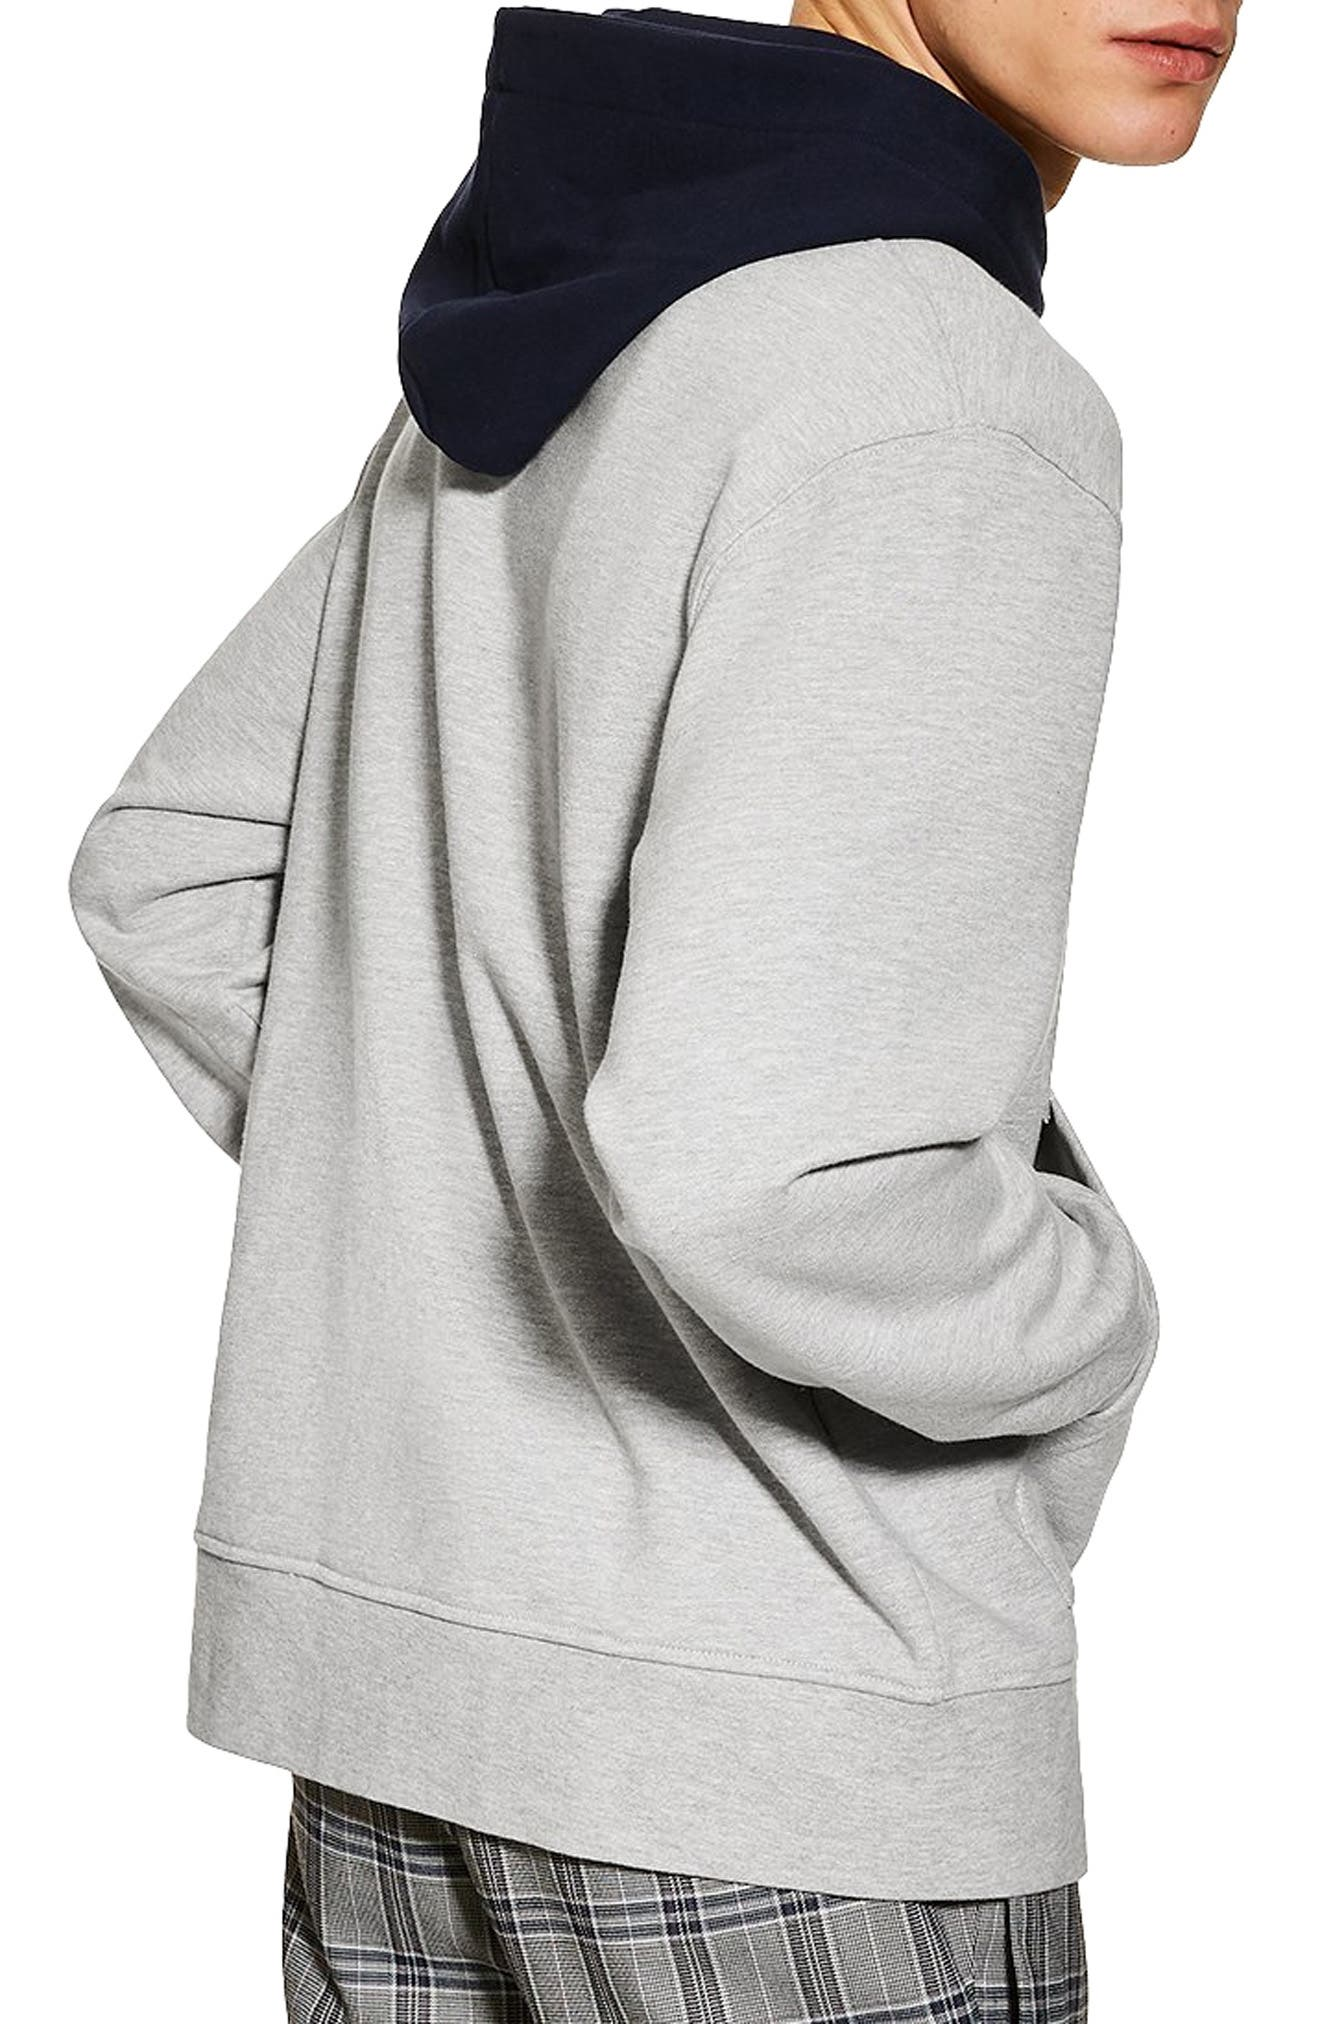 TOPMAN, Classic Contrast Hooded Sweatshirt, Alternate thumbnail 2, color, GREY